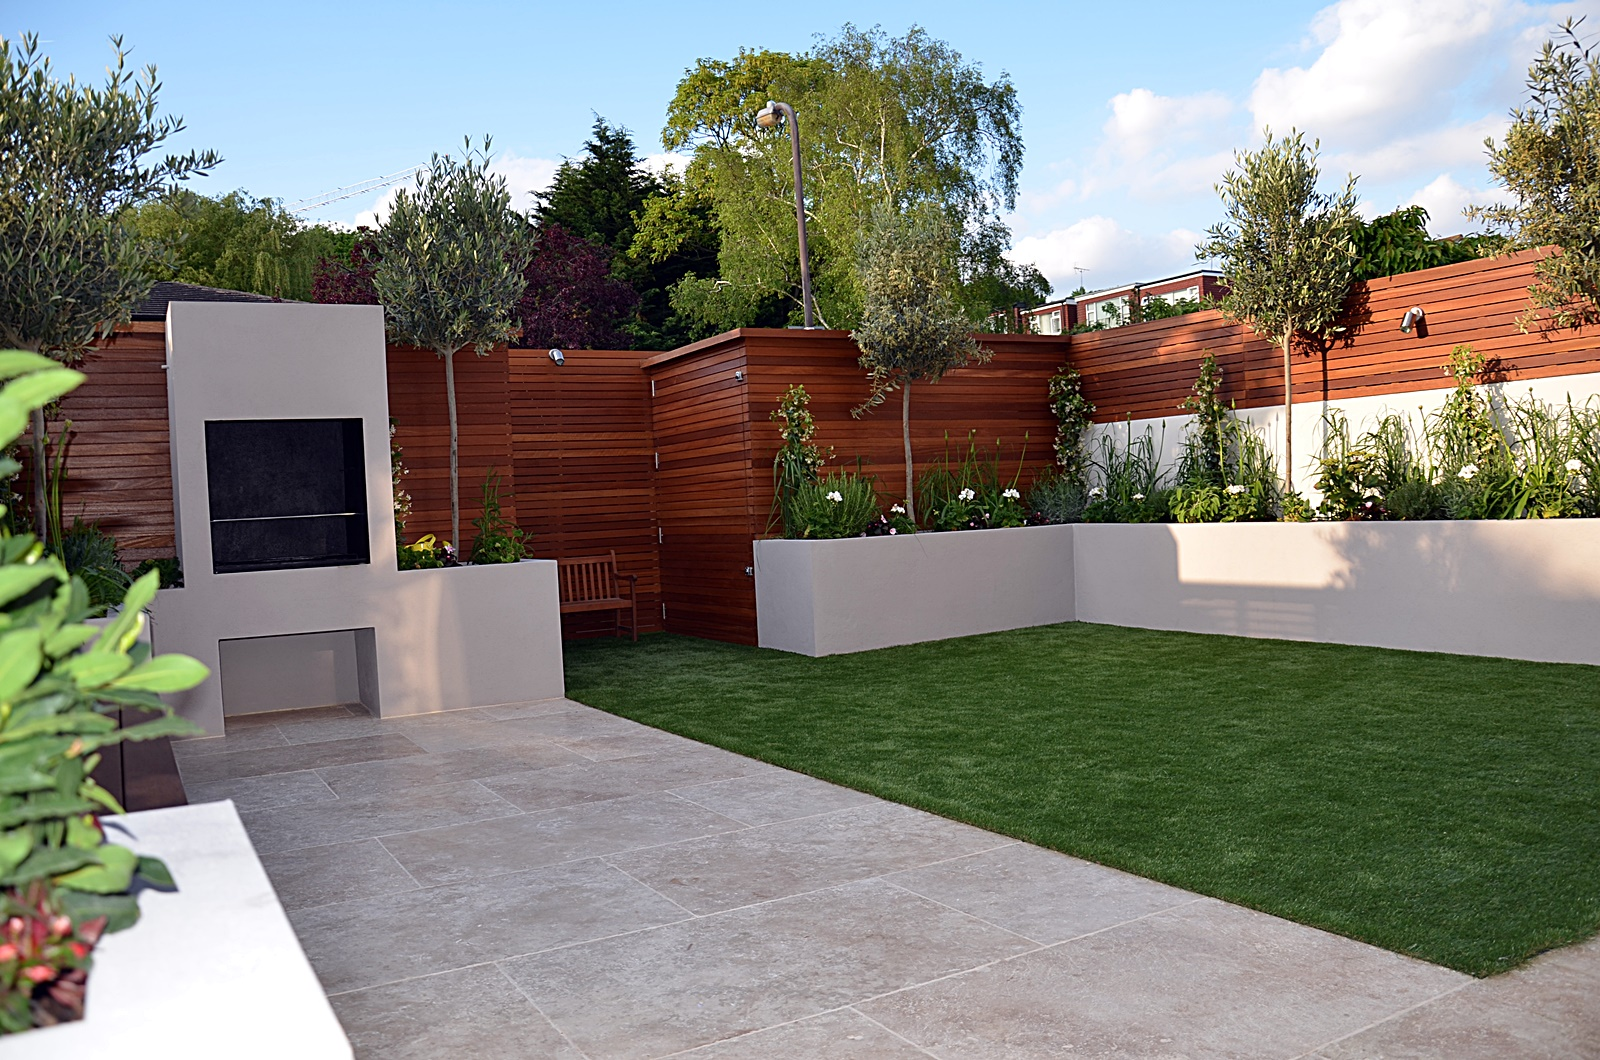 Modern garden design fulham chelsea clapham battersea for Modern landscaping ideas